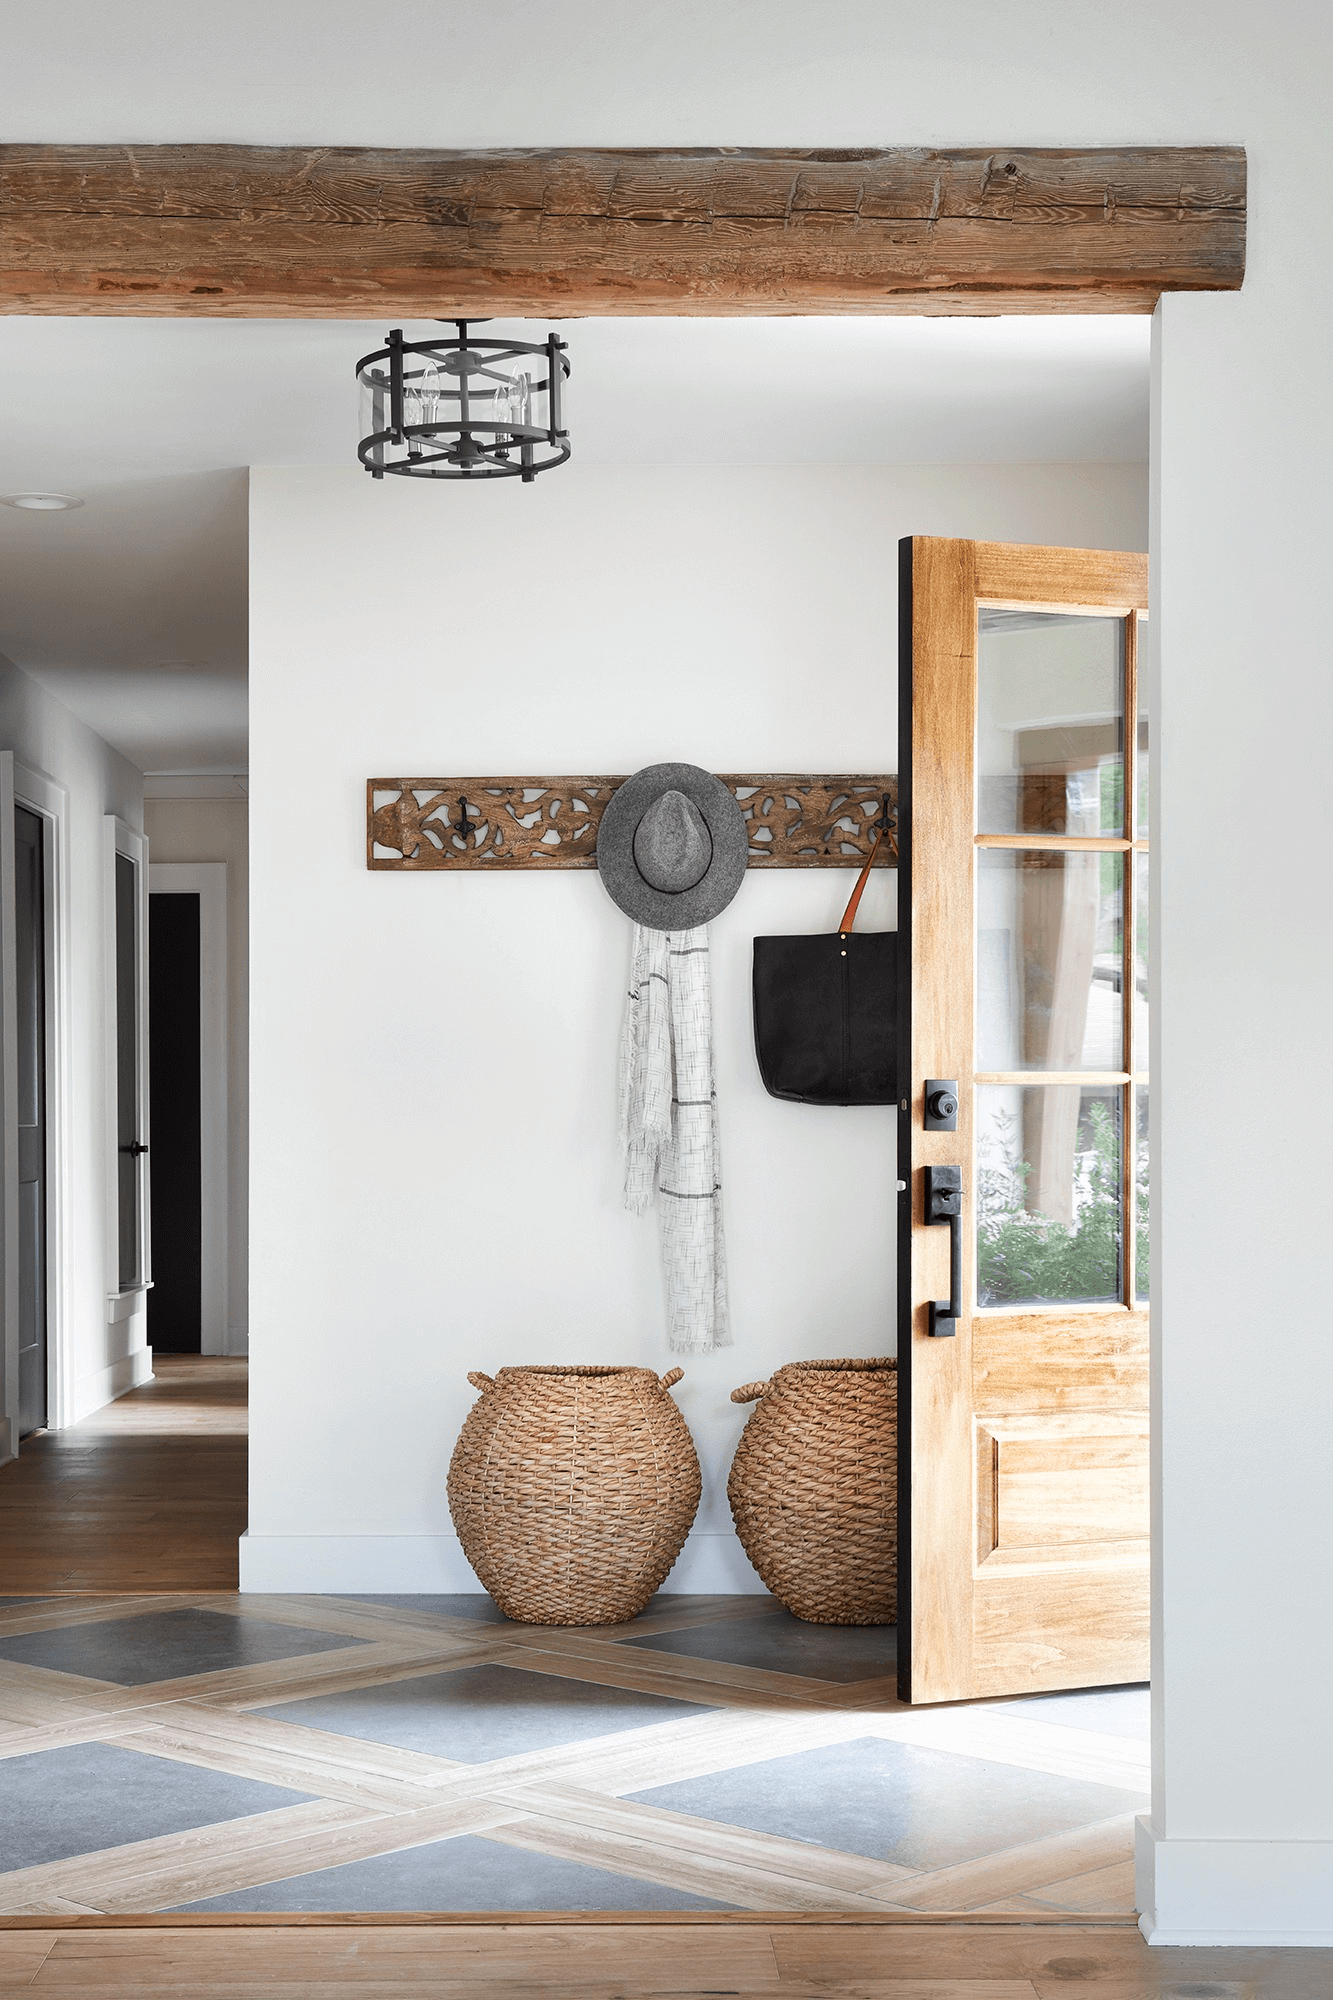 this is a farmhouse entryway with tiled flooring and wooden beams(1)